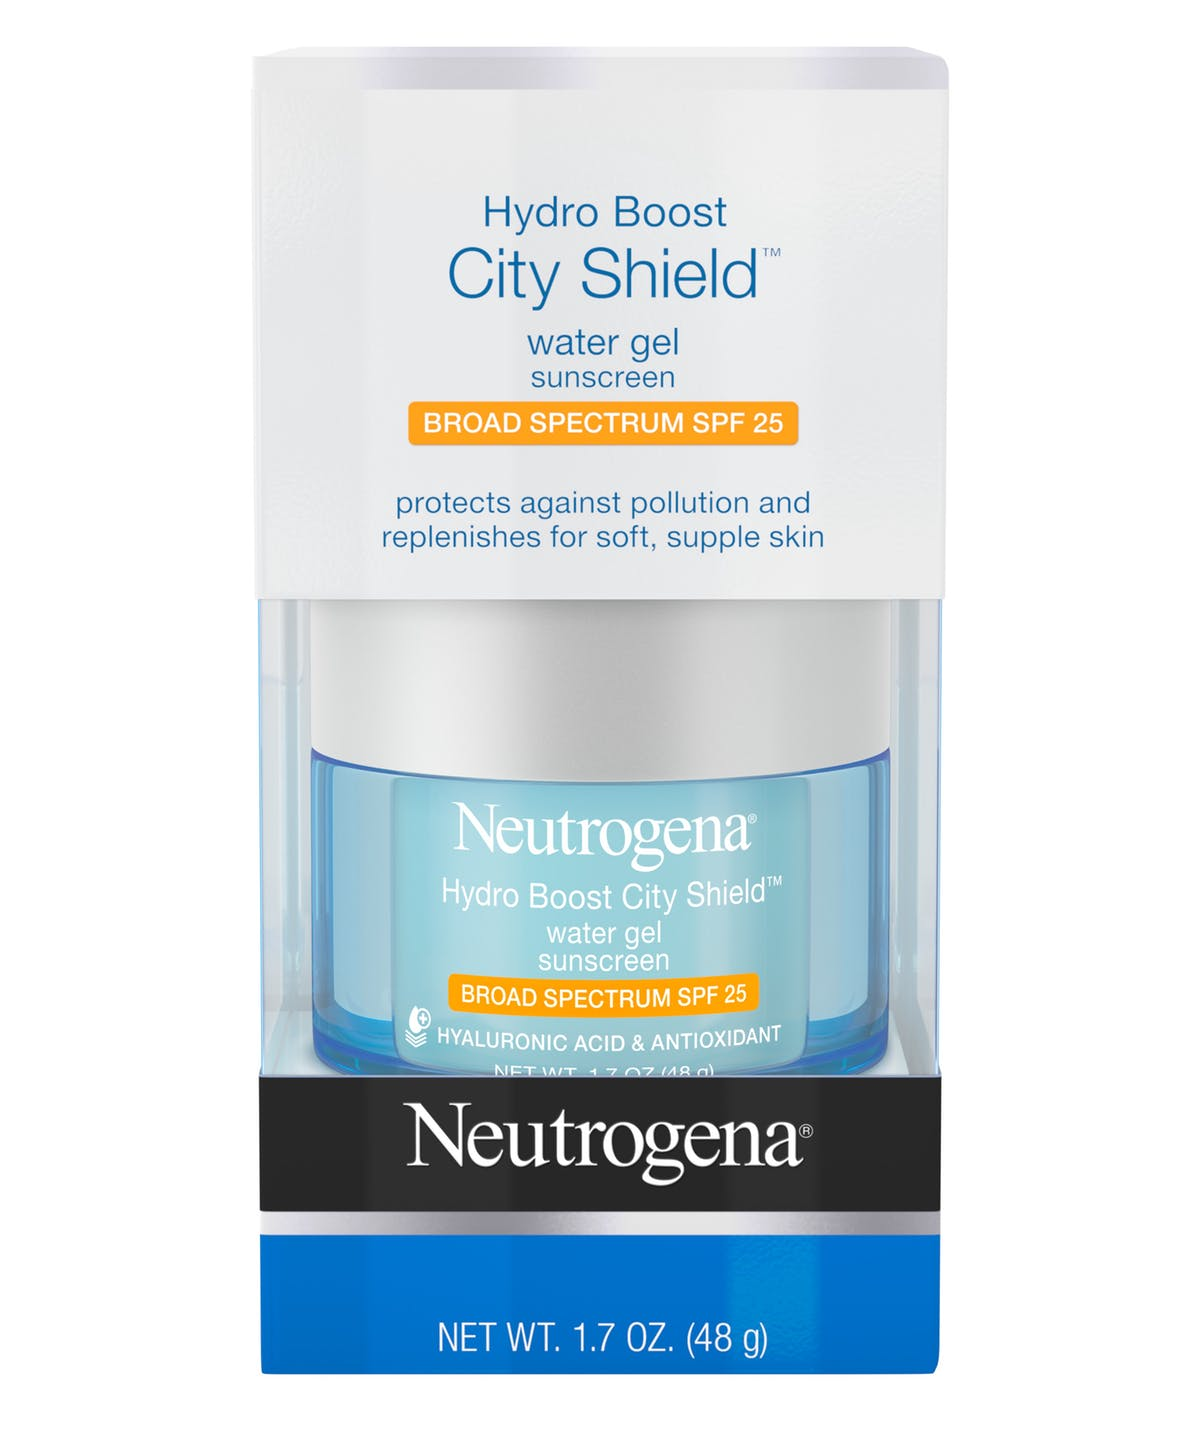 Neutrogena Hydro Boost City Shield Water Gel SPF 25